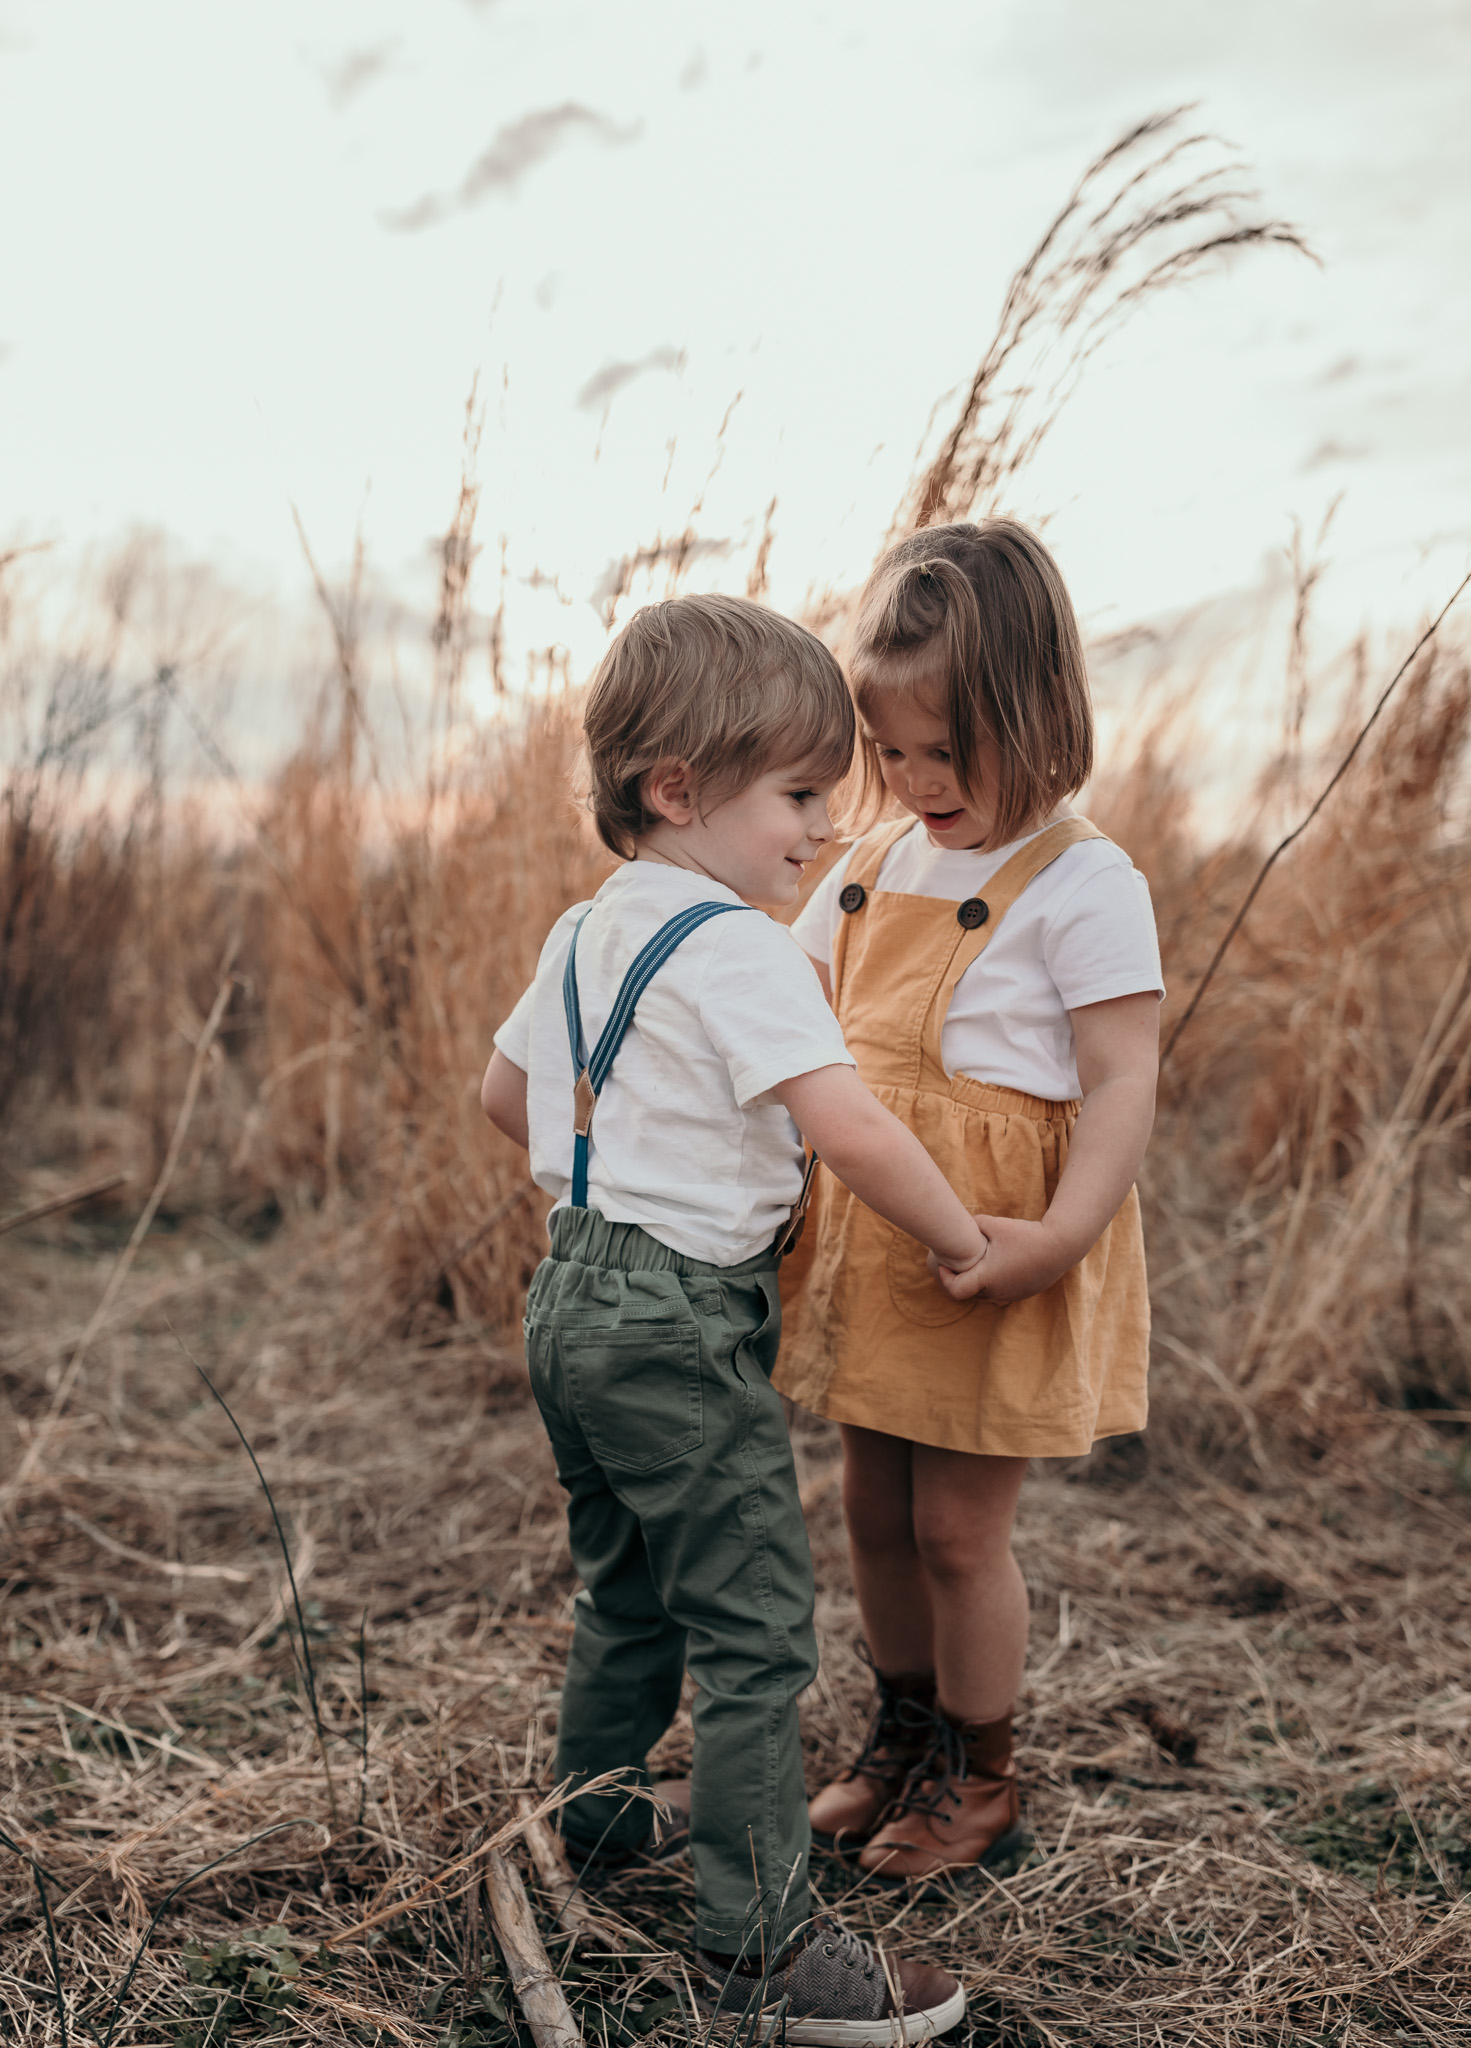 Young Boy and Girl Holding Hands